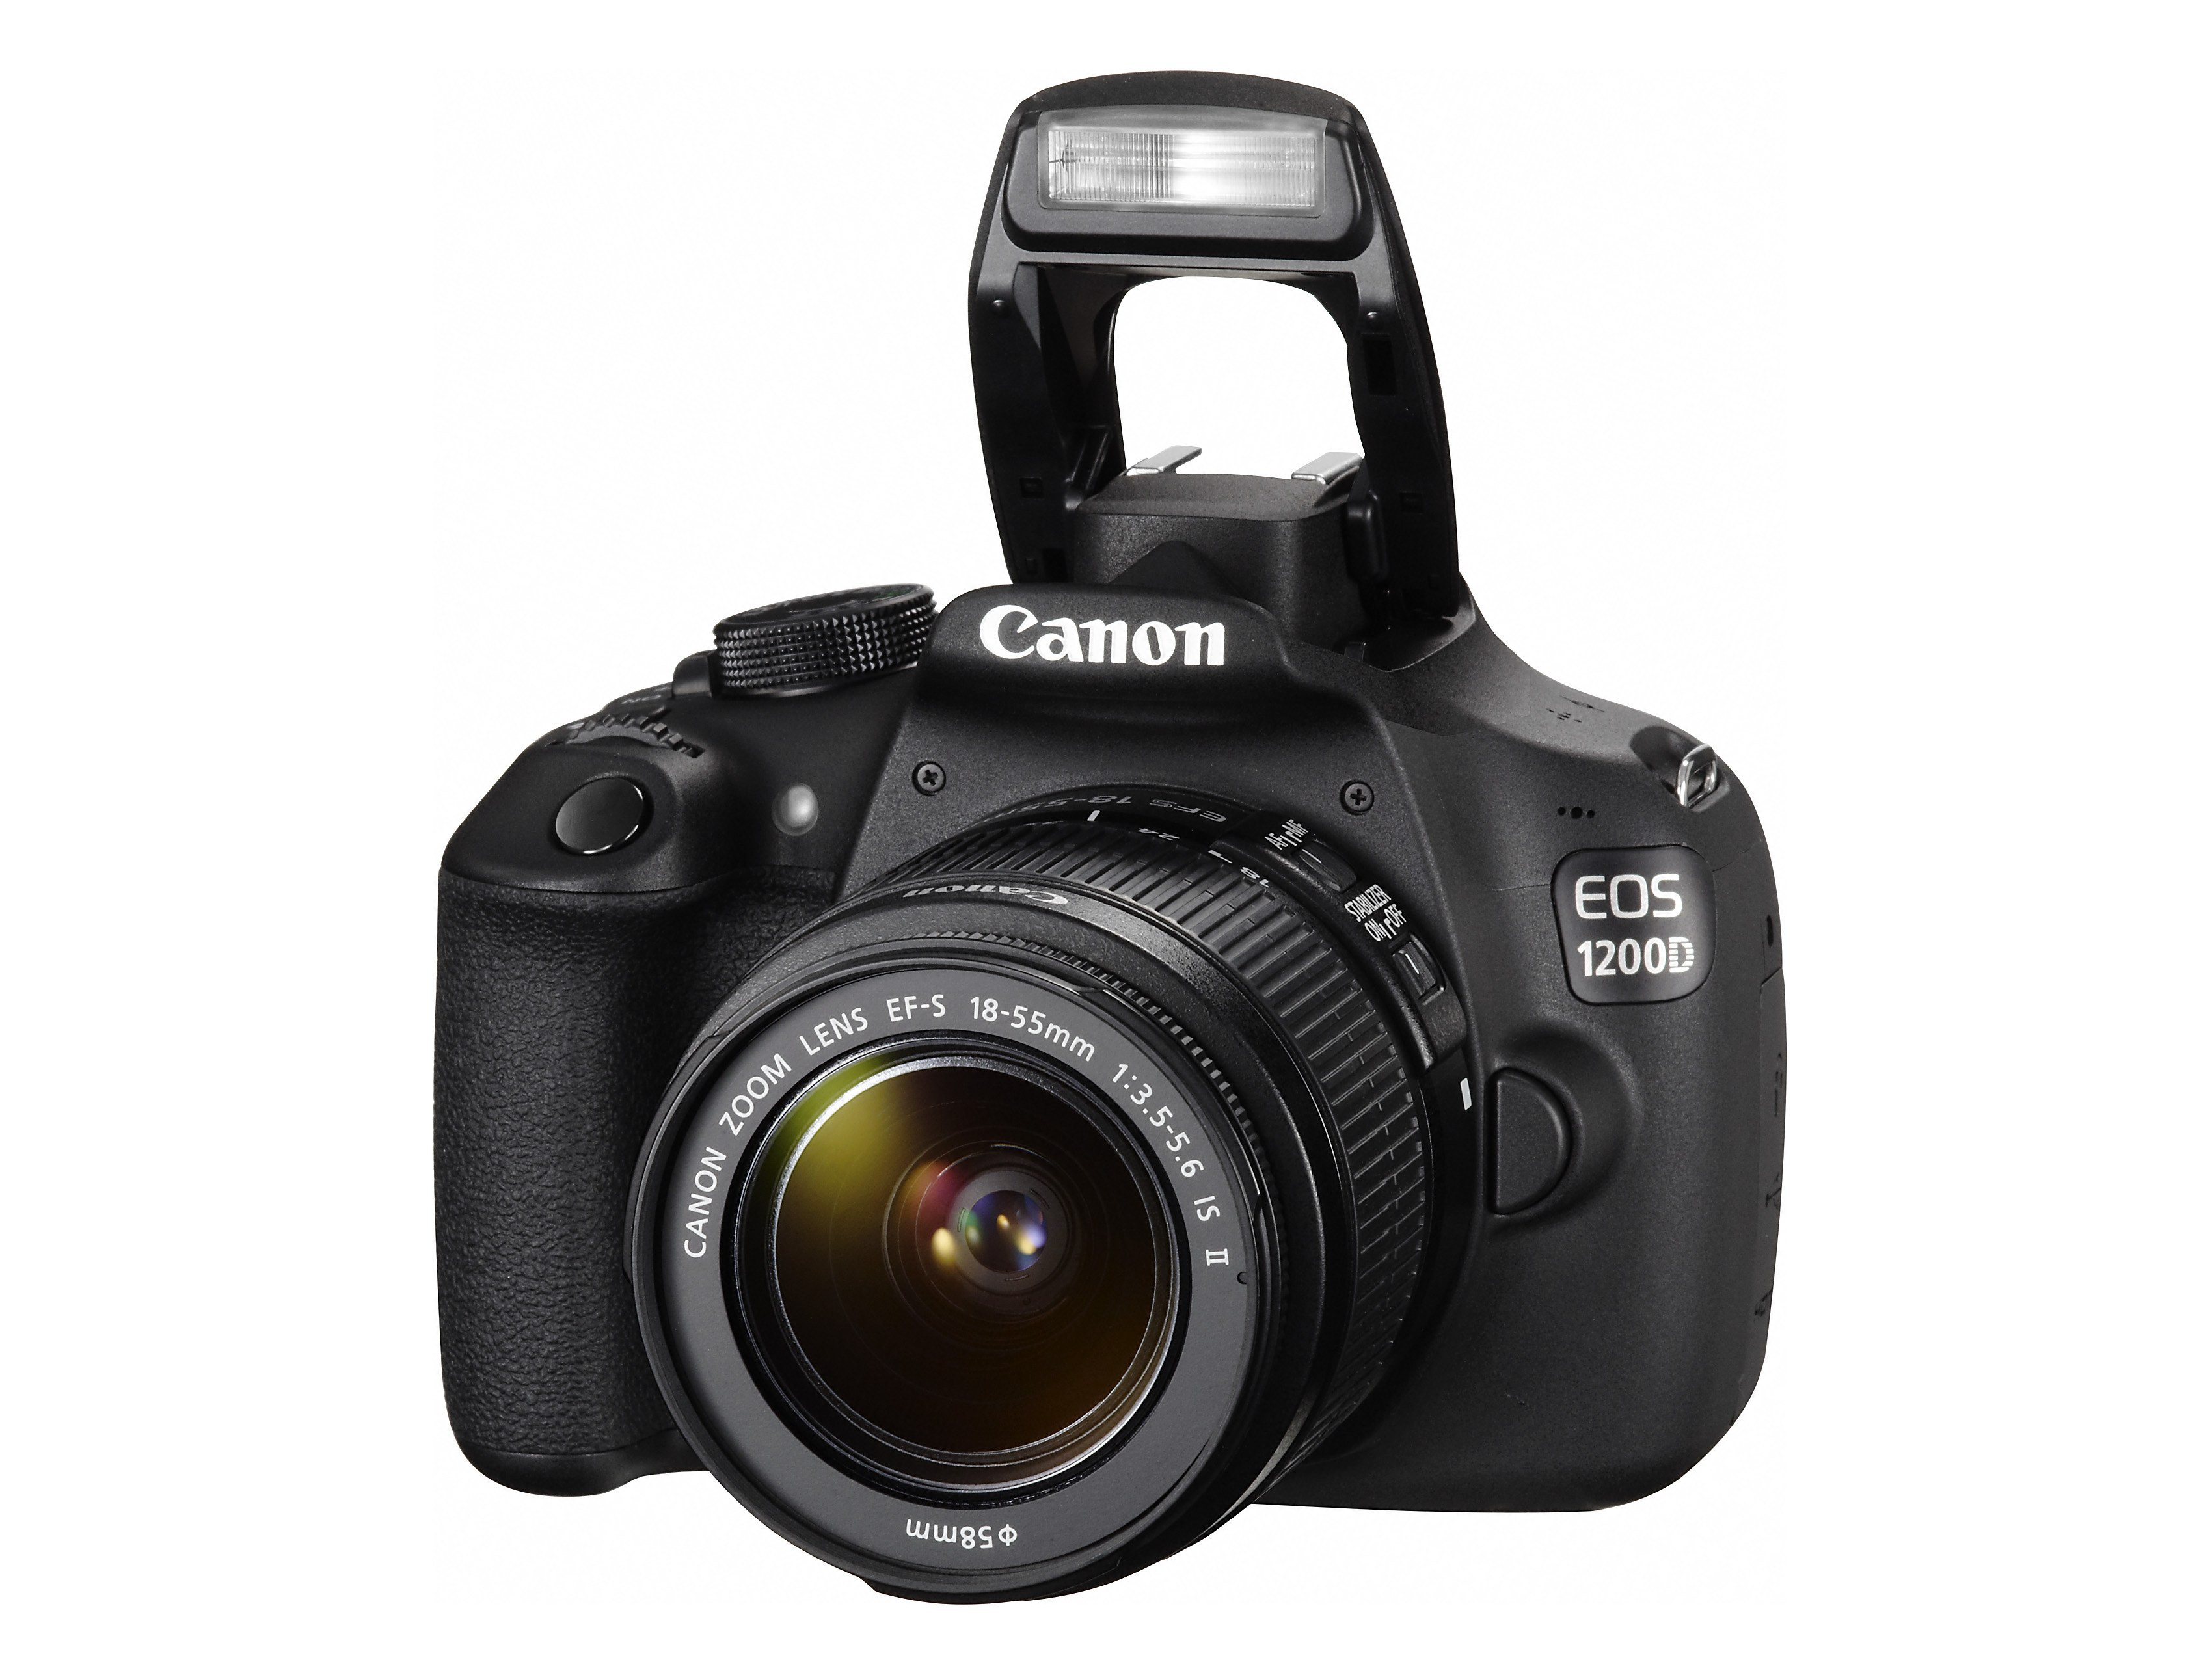 Canon adds full HD video to entry-level DSLRs with 1200D -